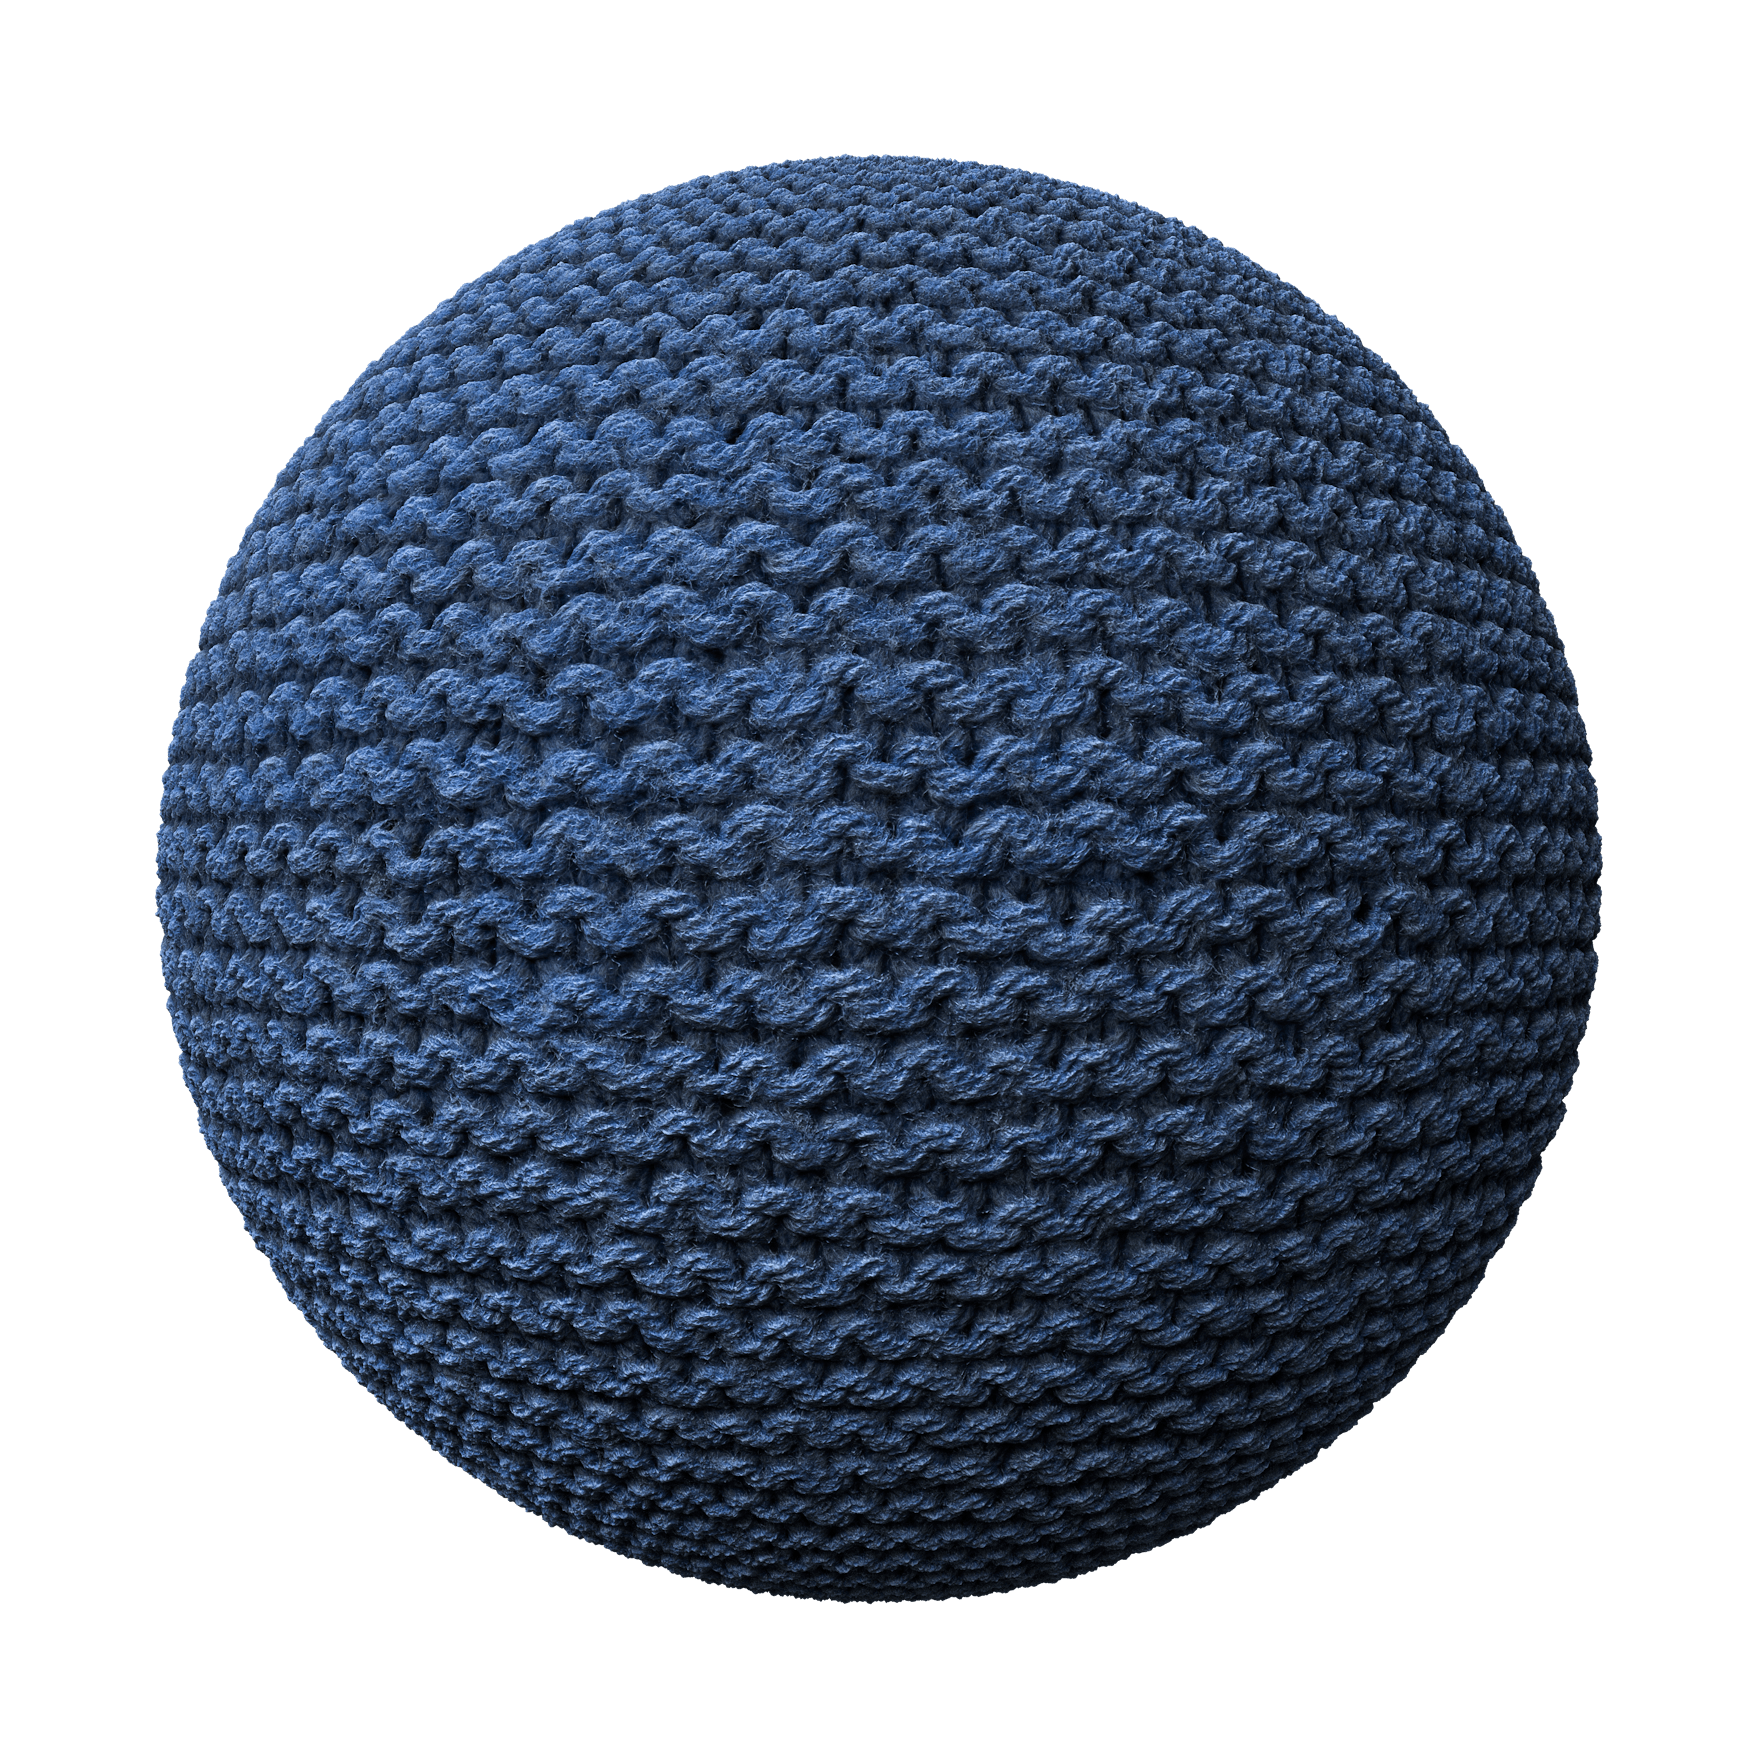 Free Cinema 4d Textures By Motion Squared